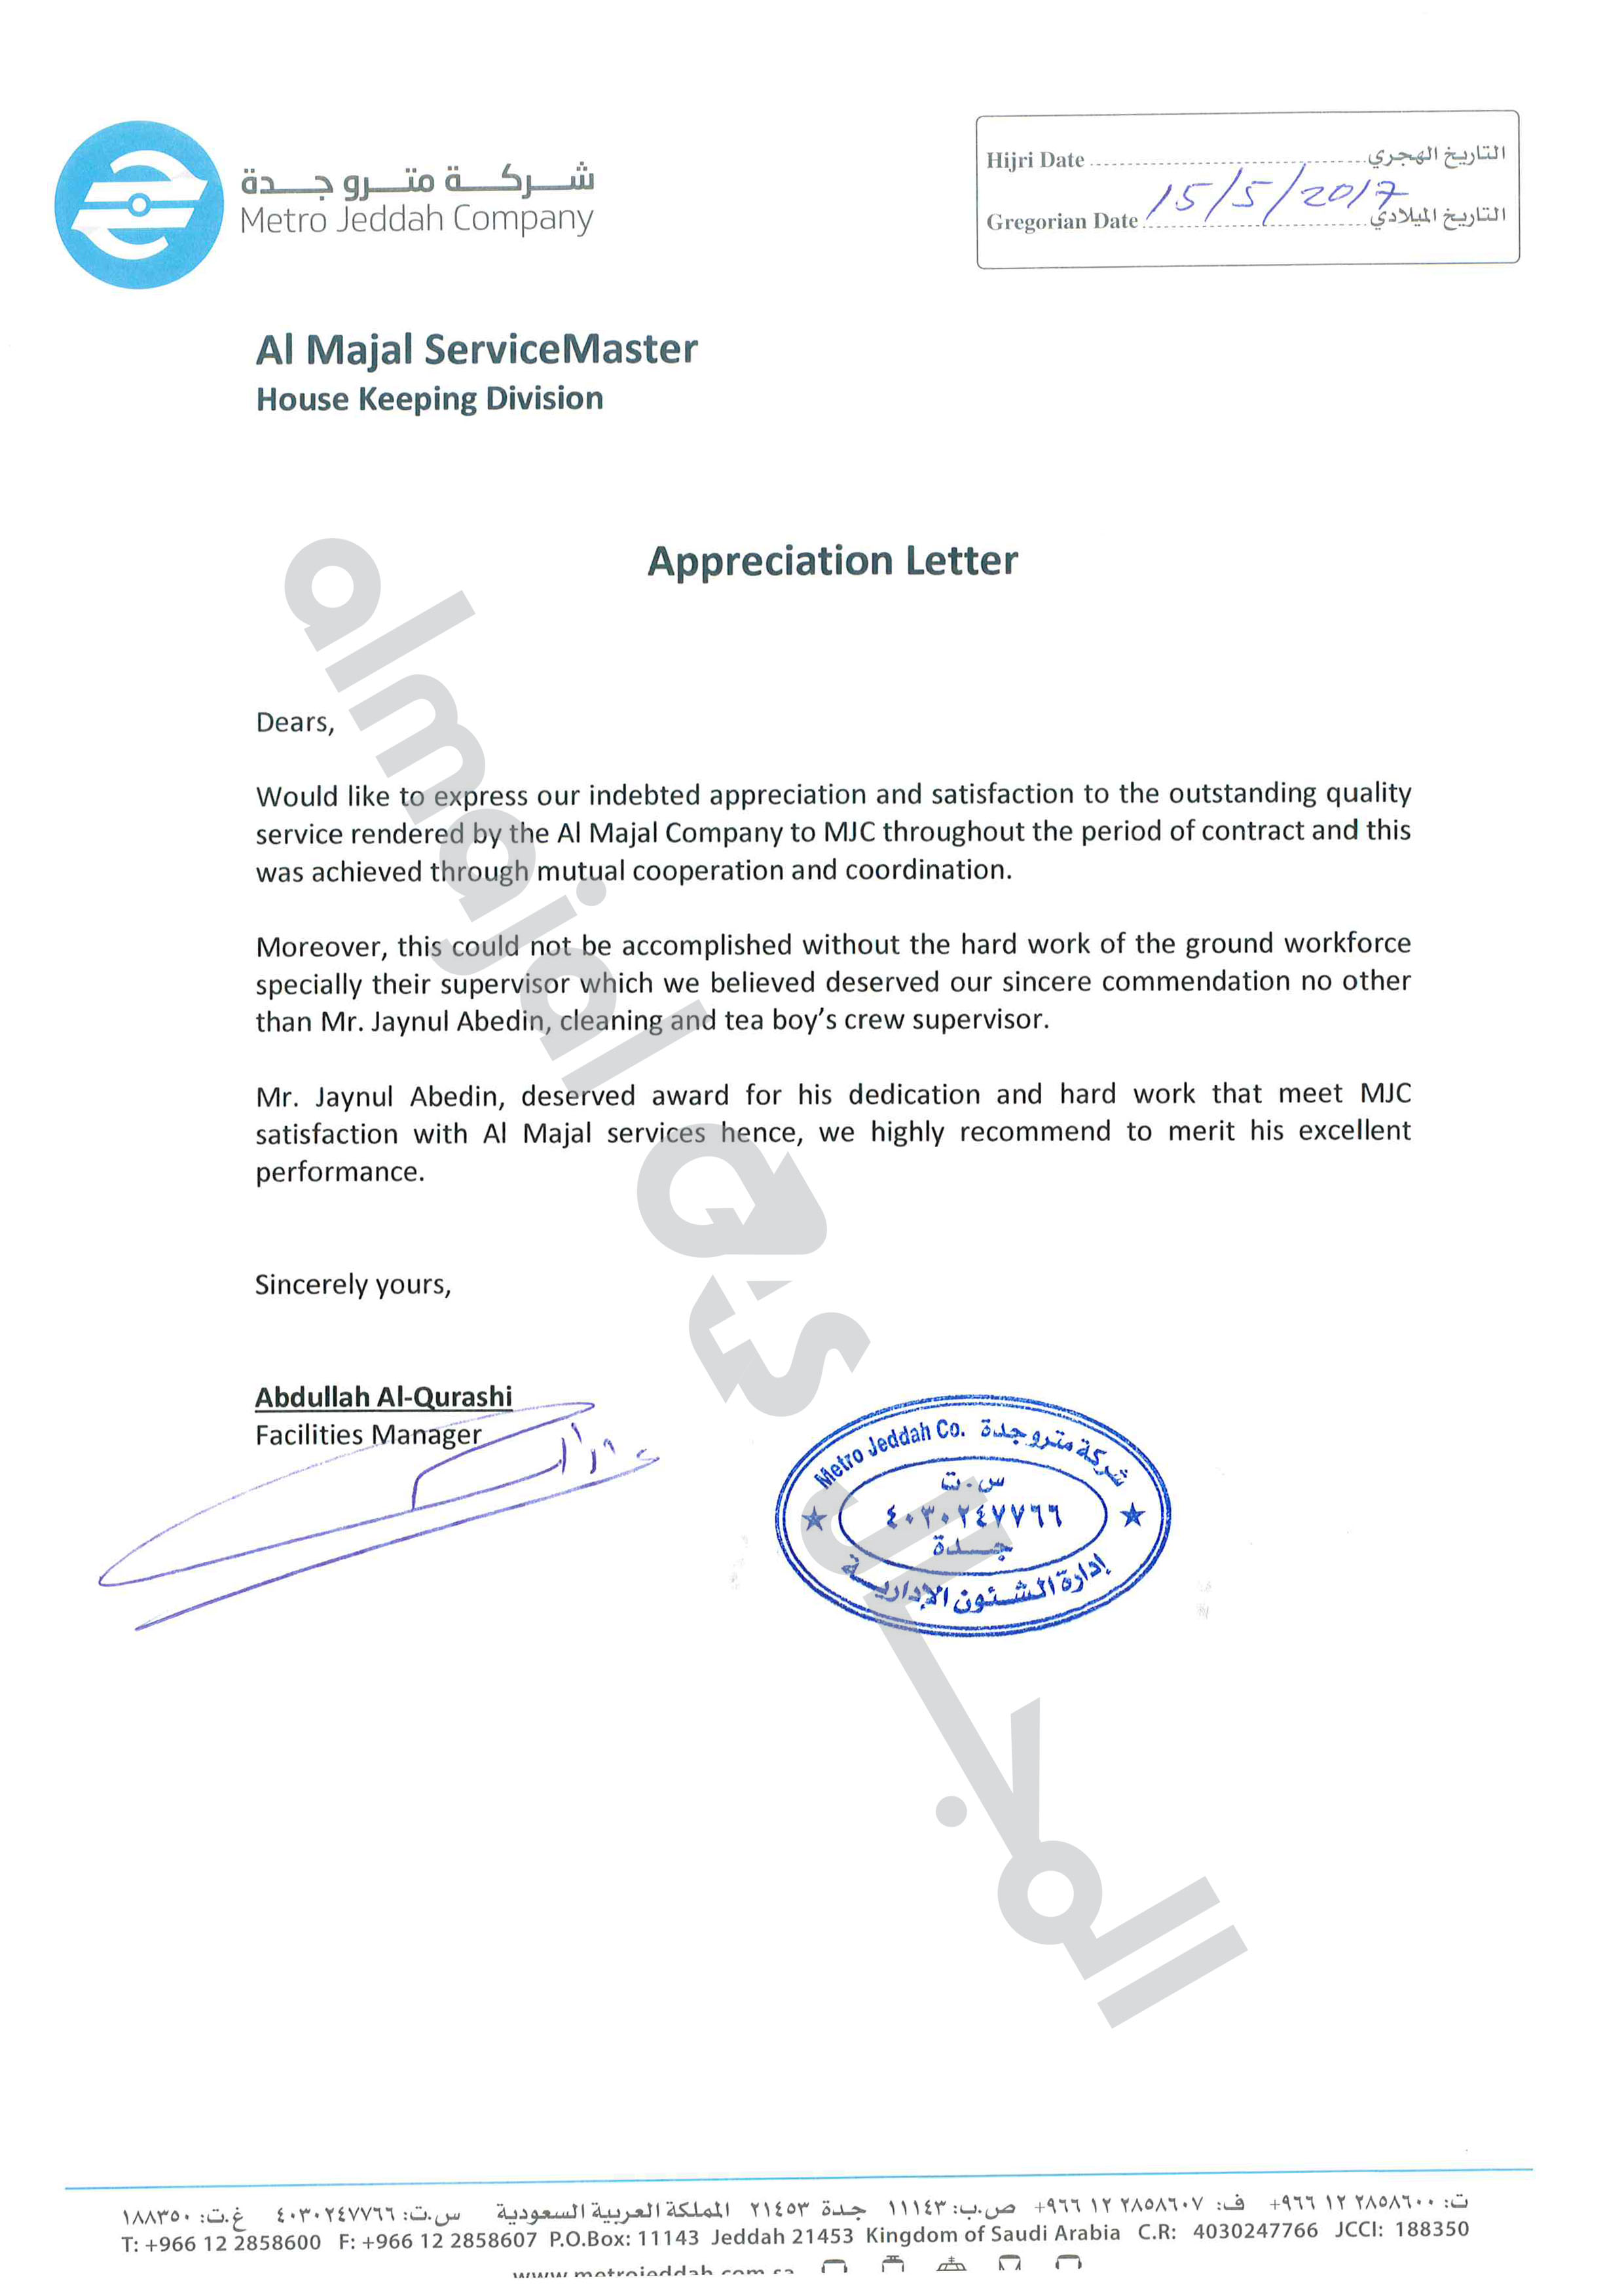 Appreciation Letter from  Metro Jeddah Company